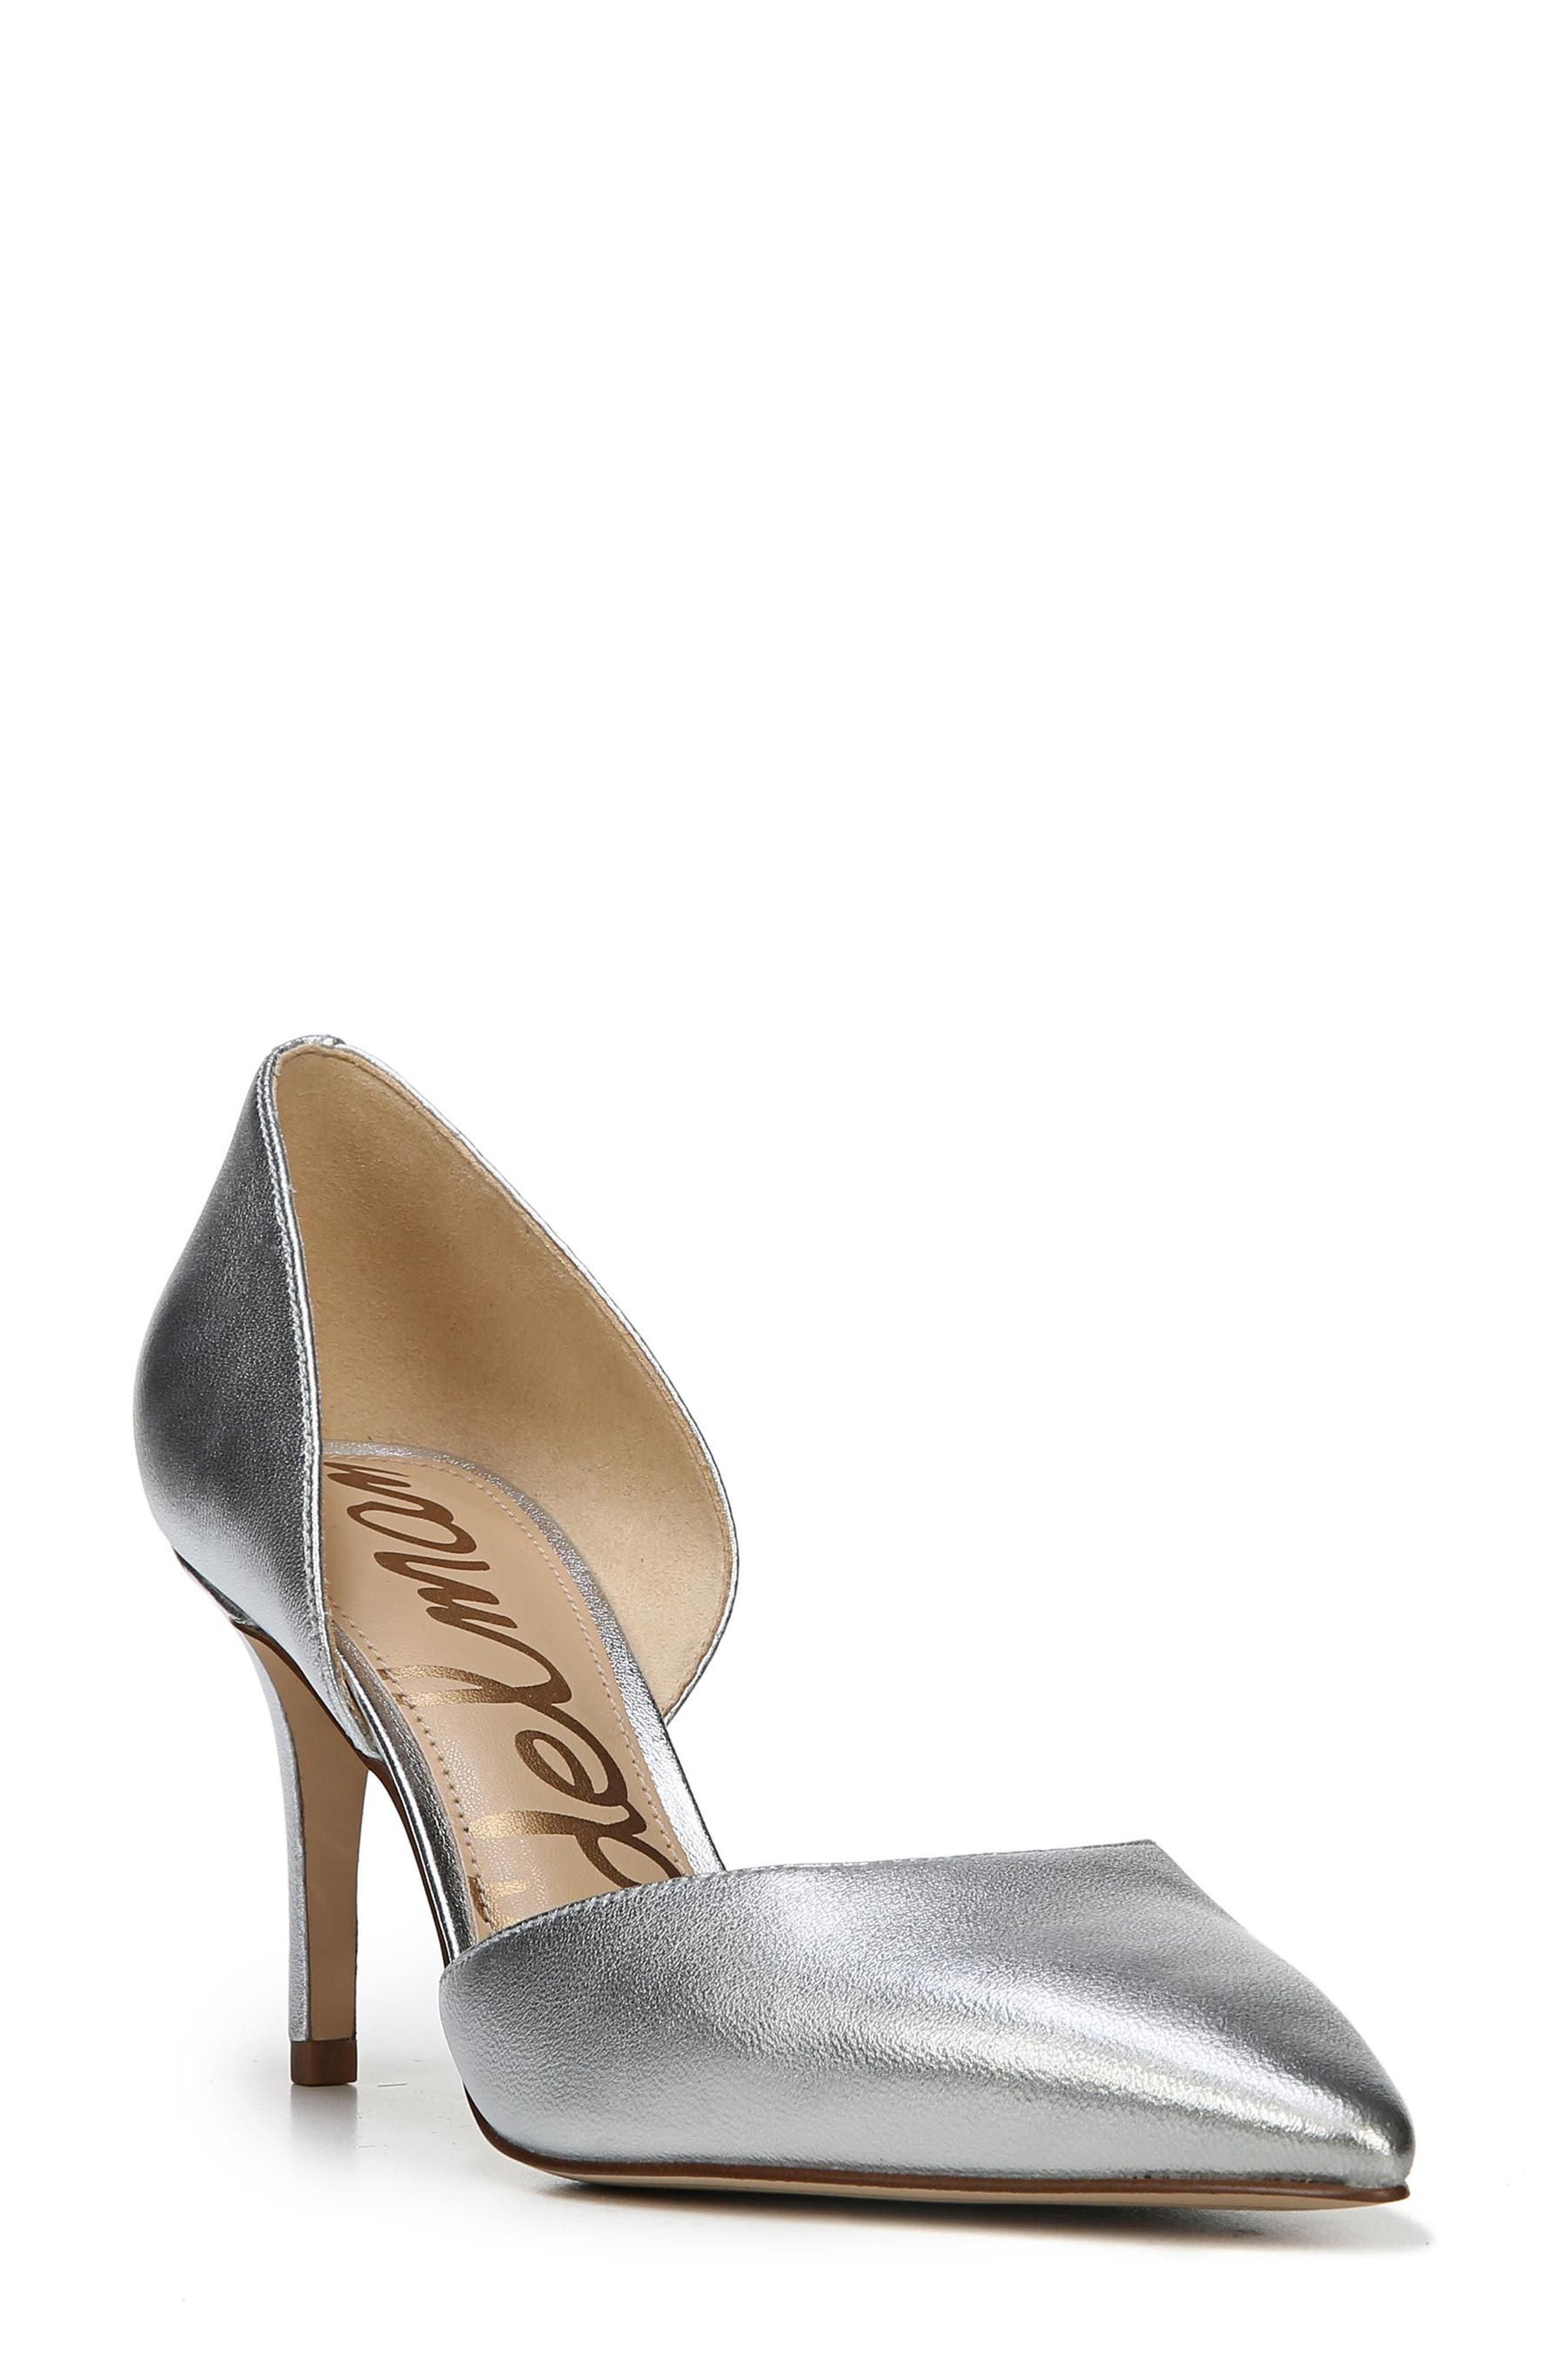 'Telsa' d'Orsay Pointy Toe Pump,                             Main thumbnail 1, color,                             040